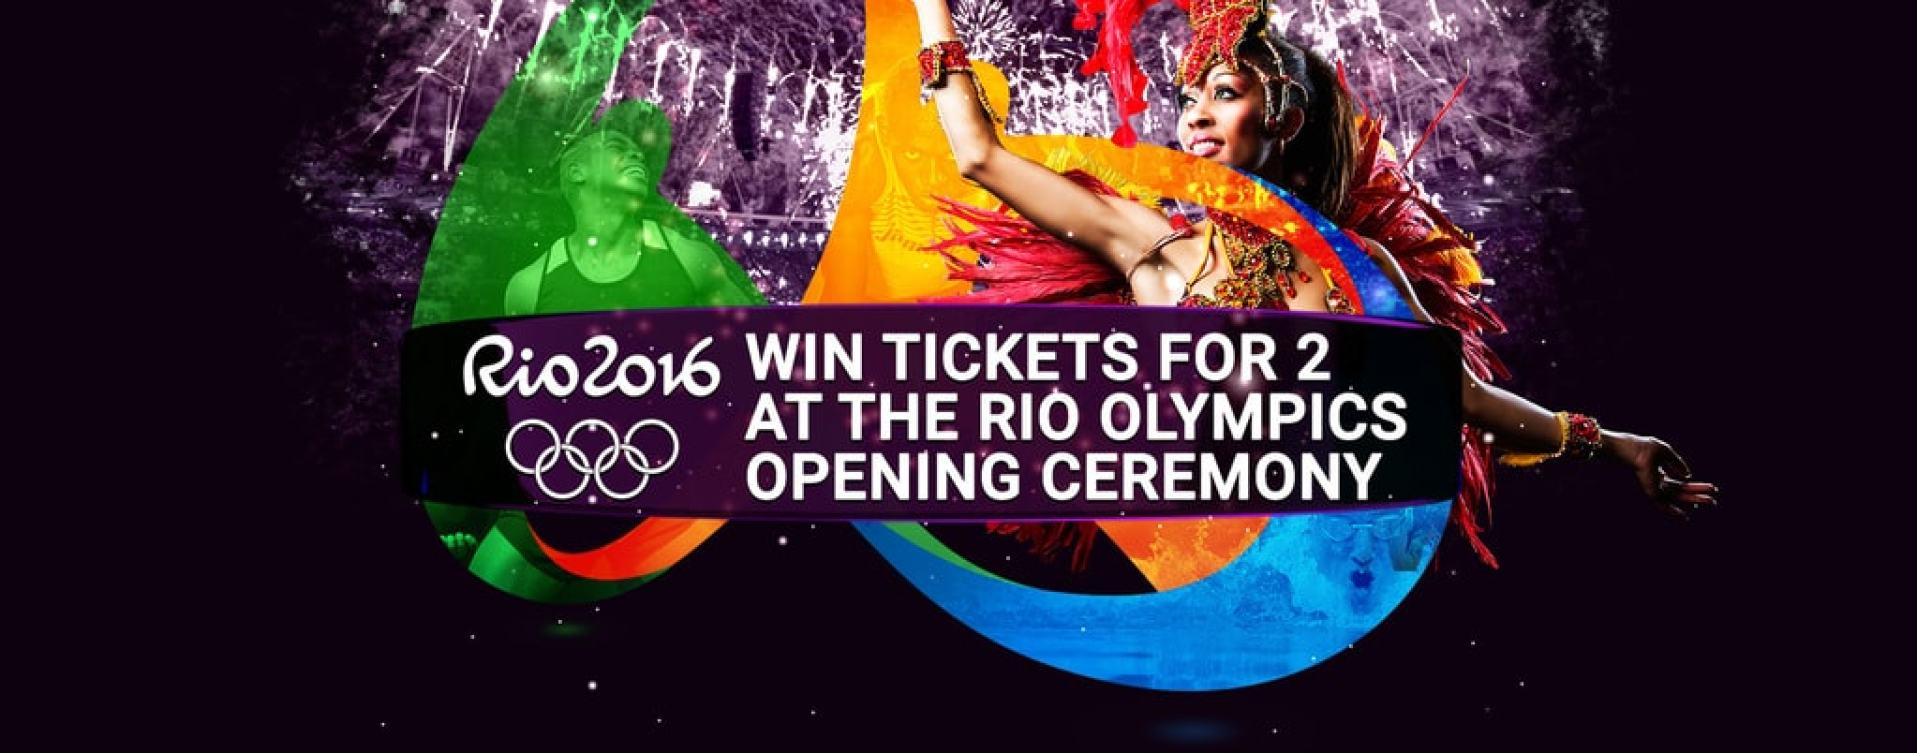 Rich Casino - Ticket to 2016 Rio Olympics